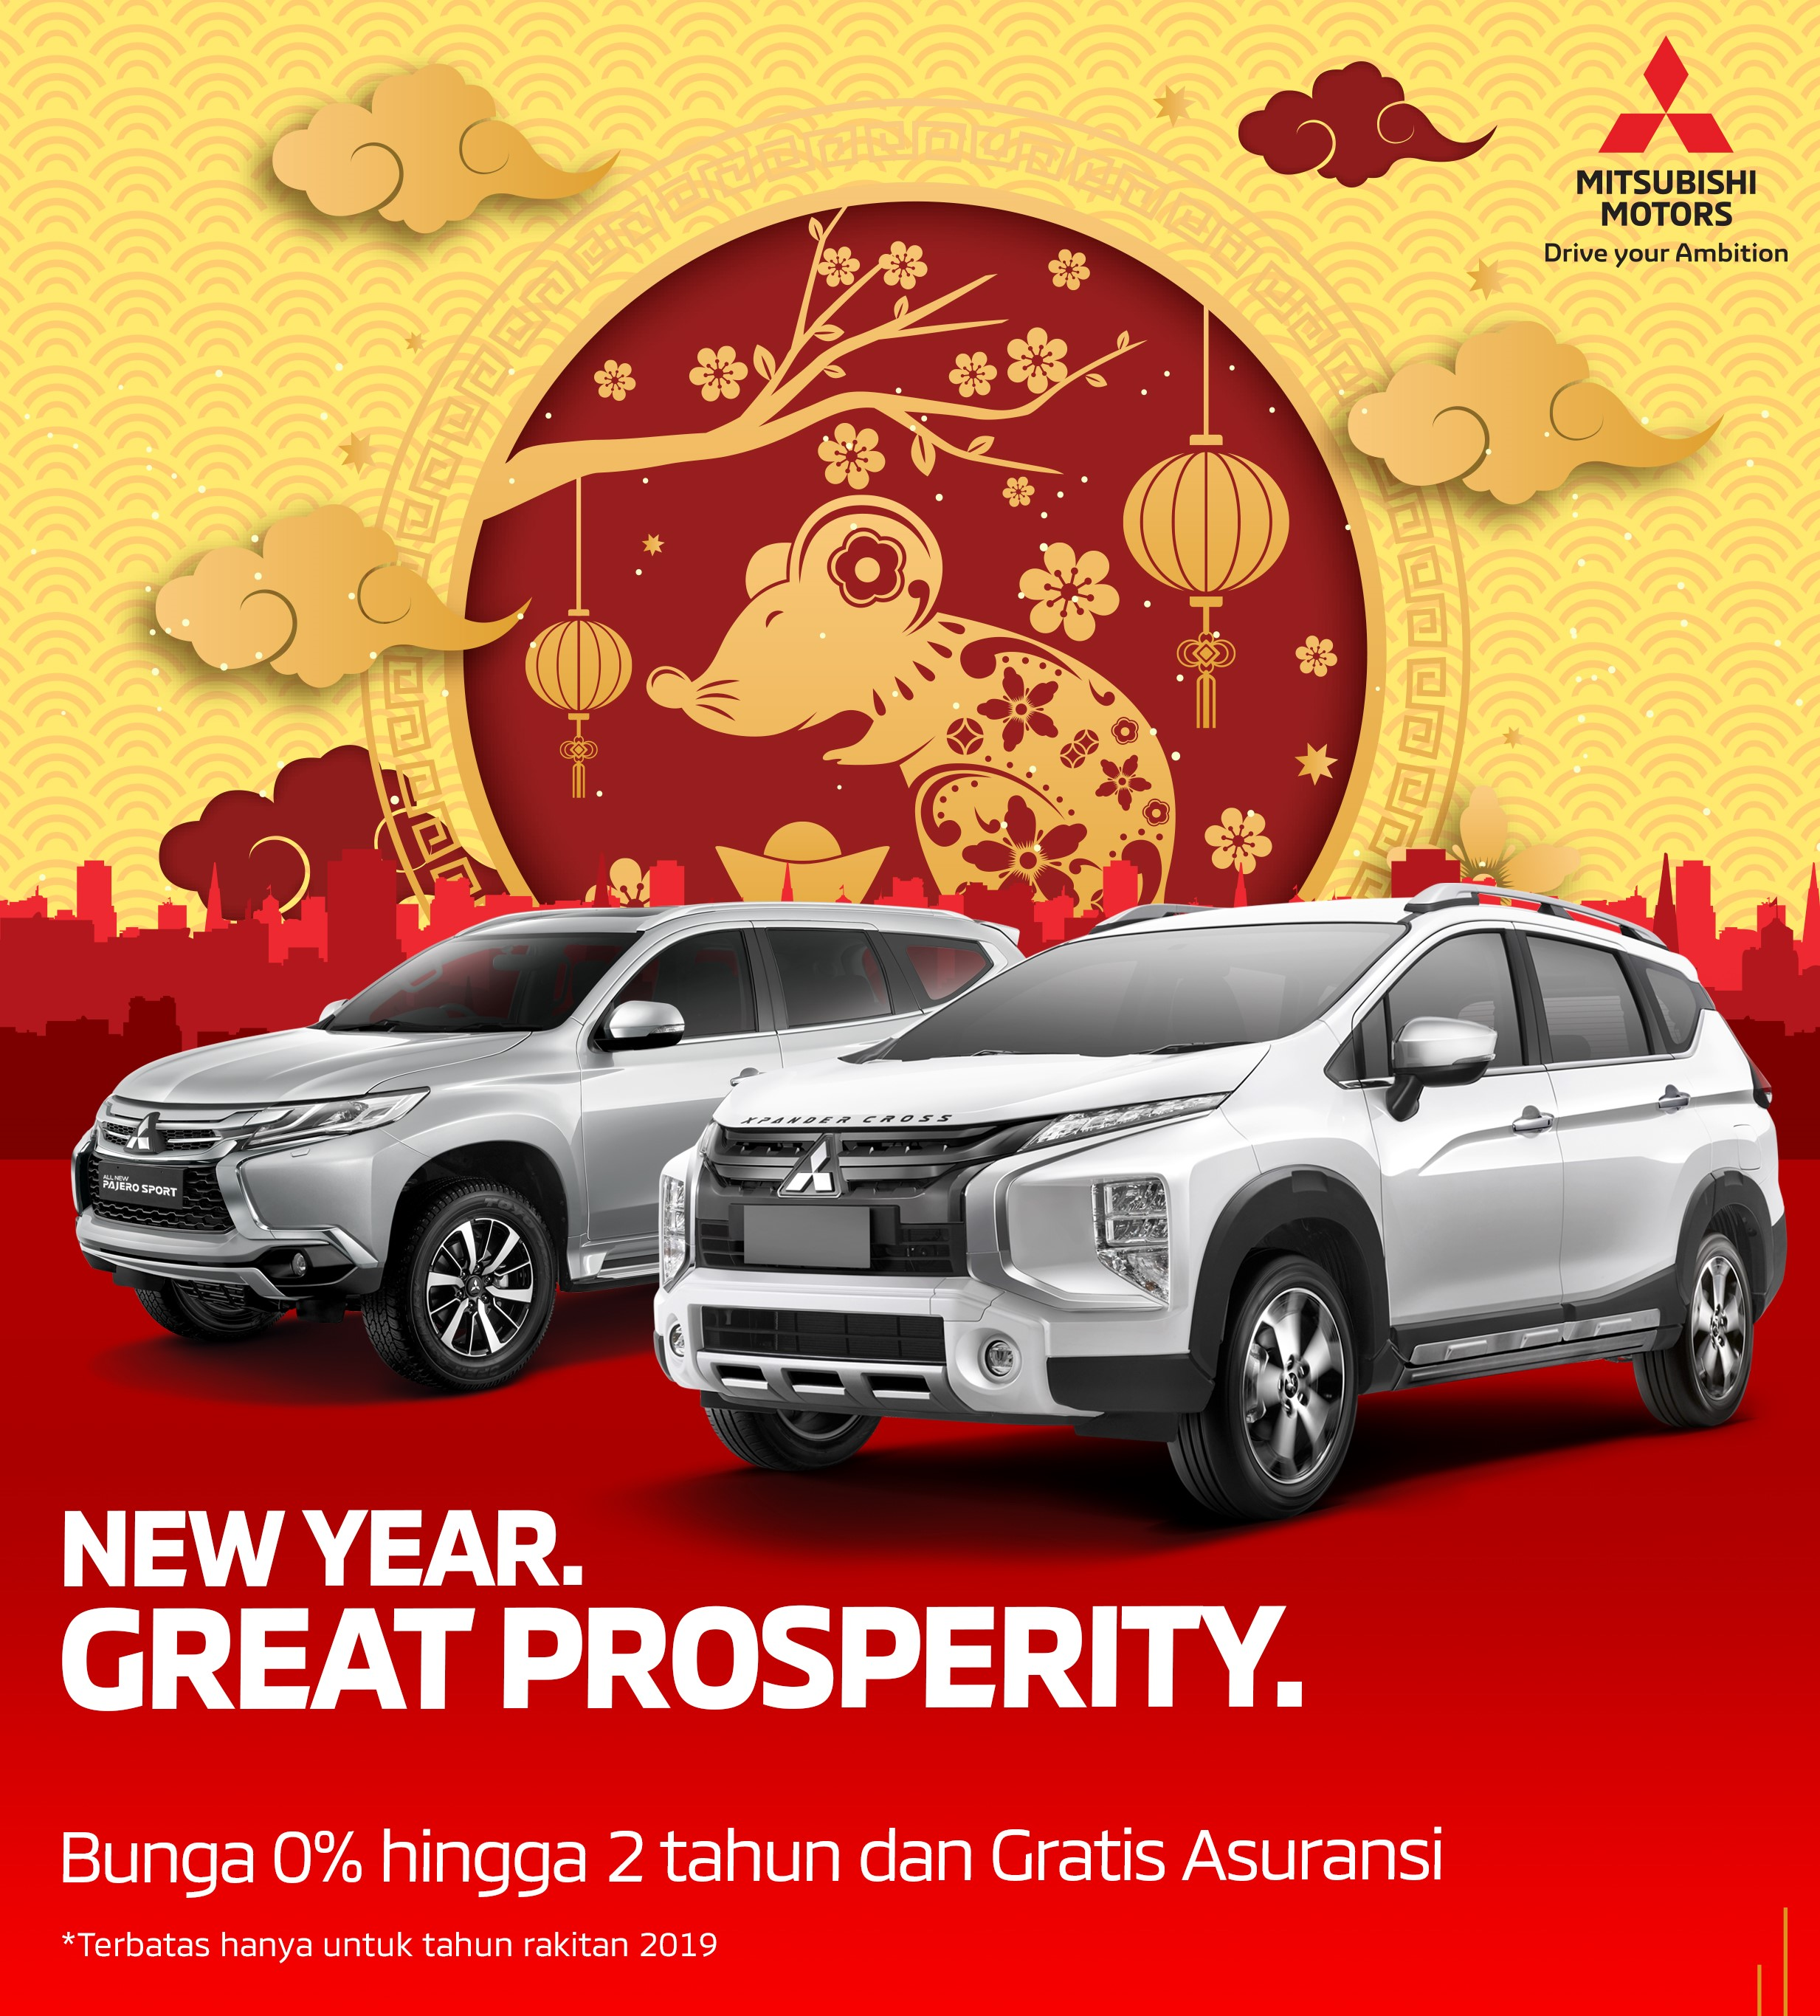 Program Penjualan Mitsubishi Motors Januari 2020